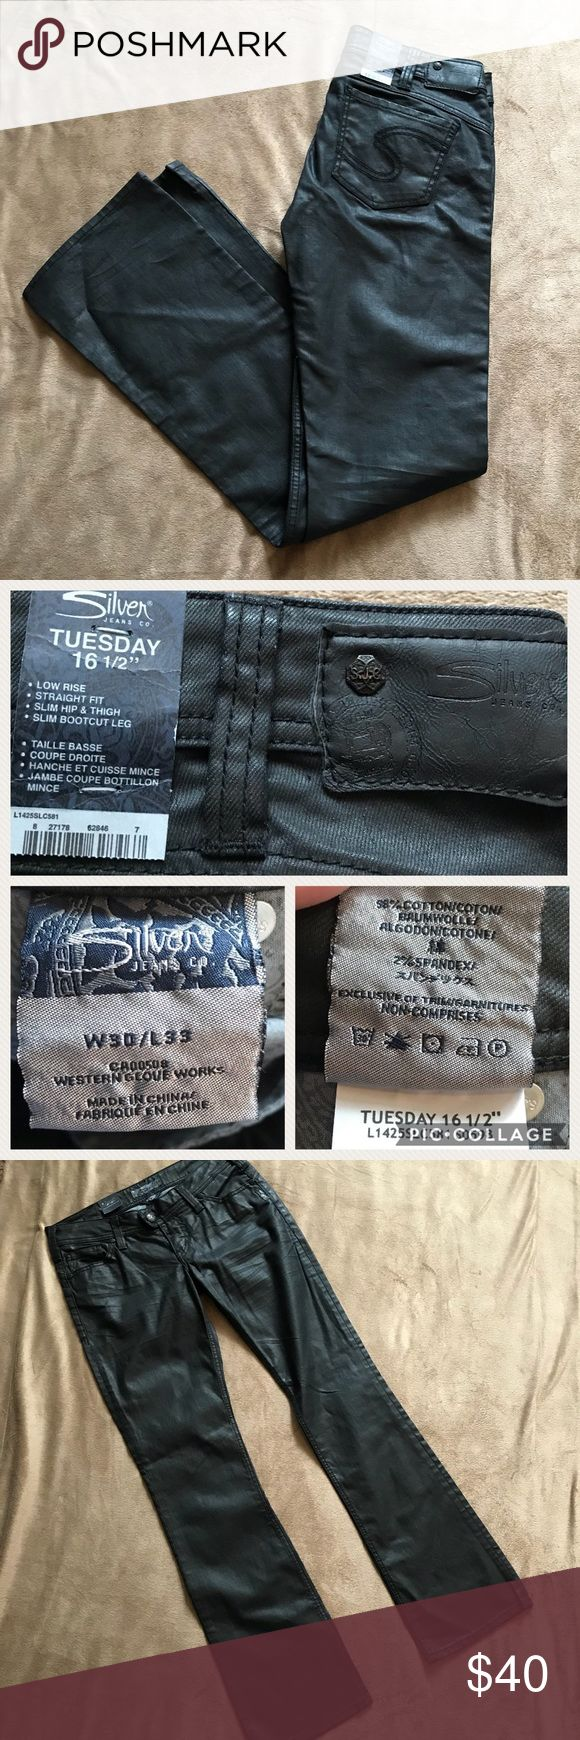 "NWT SILVER Women's Jeans Black with Sheen Size 30 I'm so sad to be listing these!  I purchased them when I lost a lot of weight, but I gained it all back before I was able to wear them.  These jeans are so unique!  They are black with a sheen. They almost have a leather look to them, but they aren't leather.  Black hardware.  It's time to find someone who will actually wear them!  W 30, L 33.  Slim bootcut. Low rise. Slim hip and thigh. Straight fit. ""Tuesday 16 1/2"" Silver Jeans brand…"